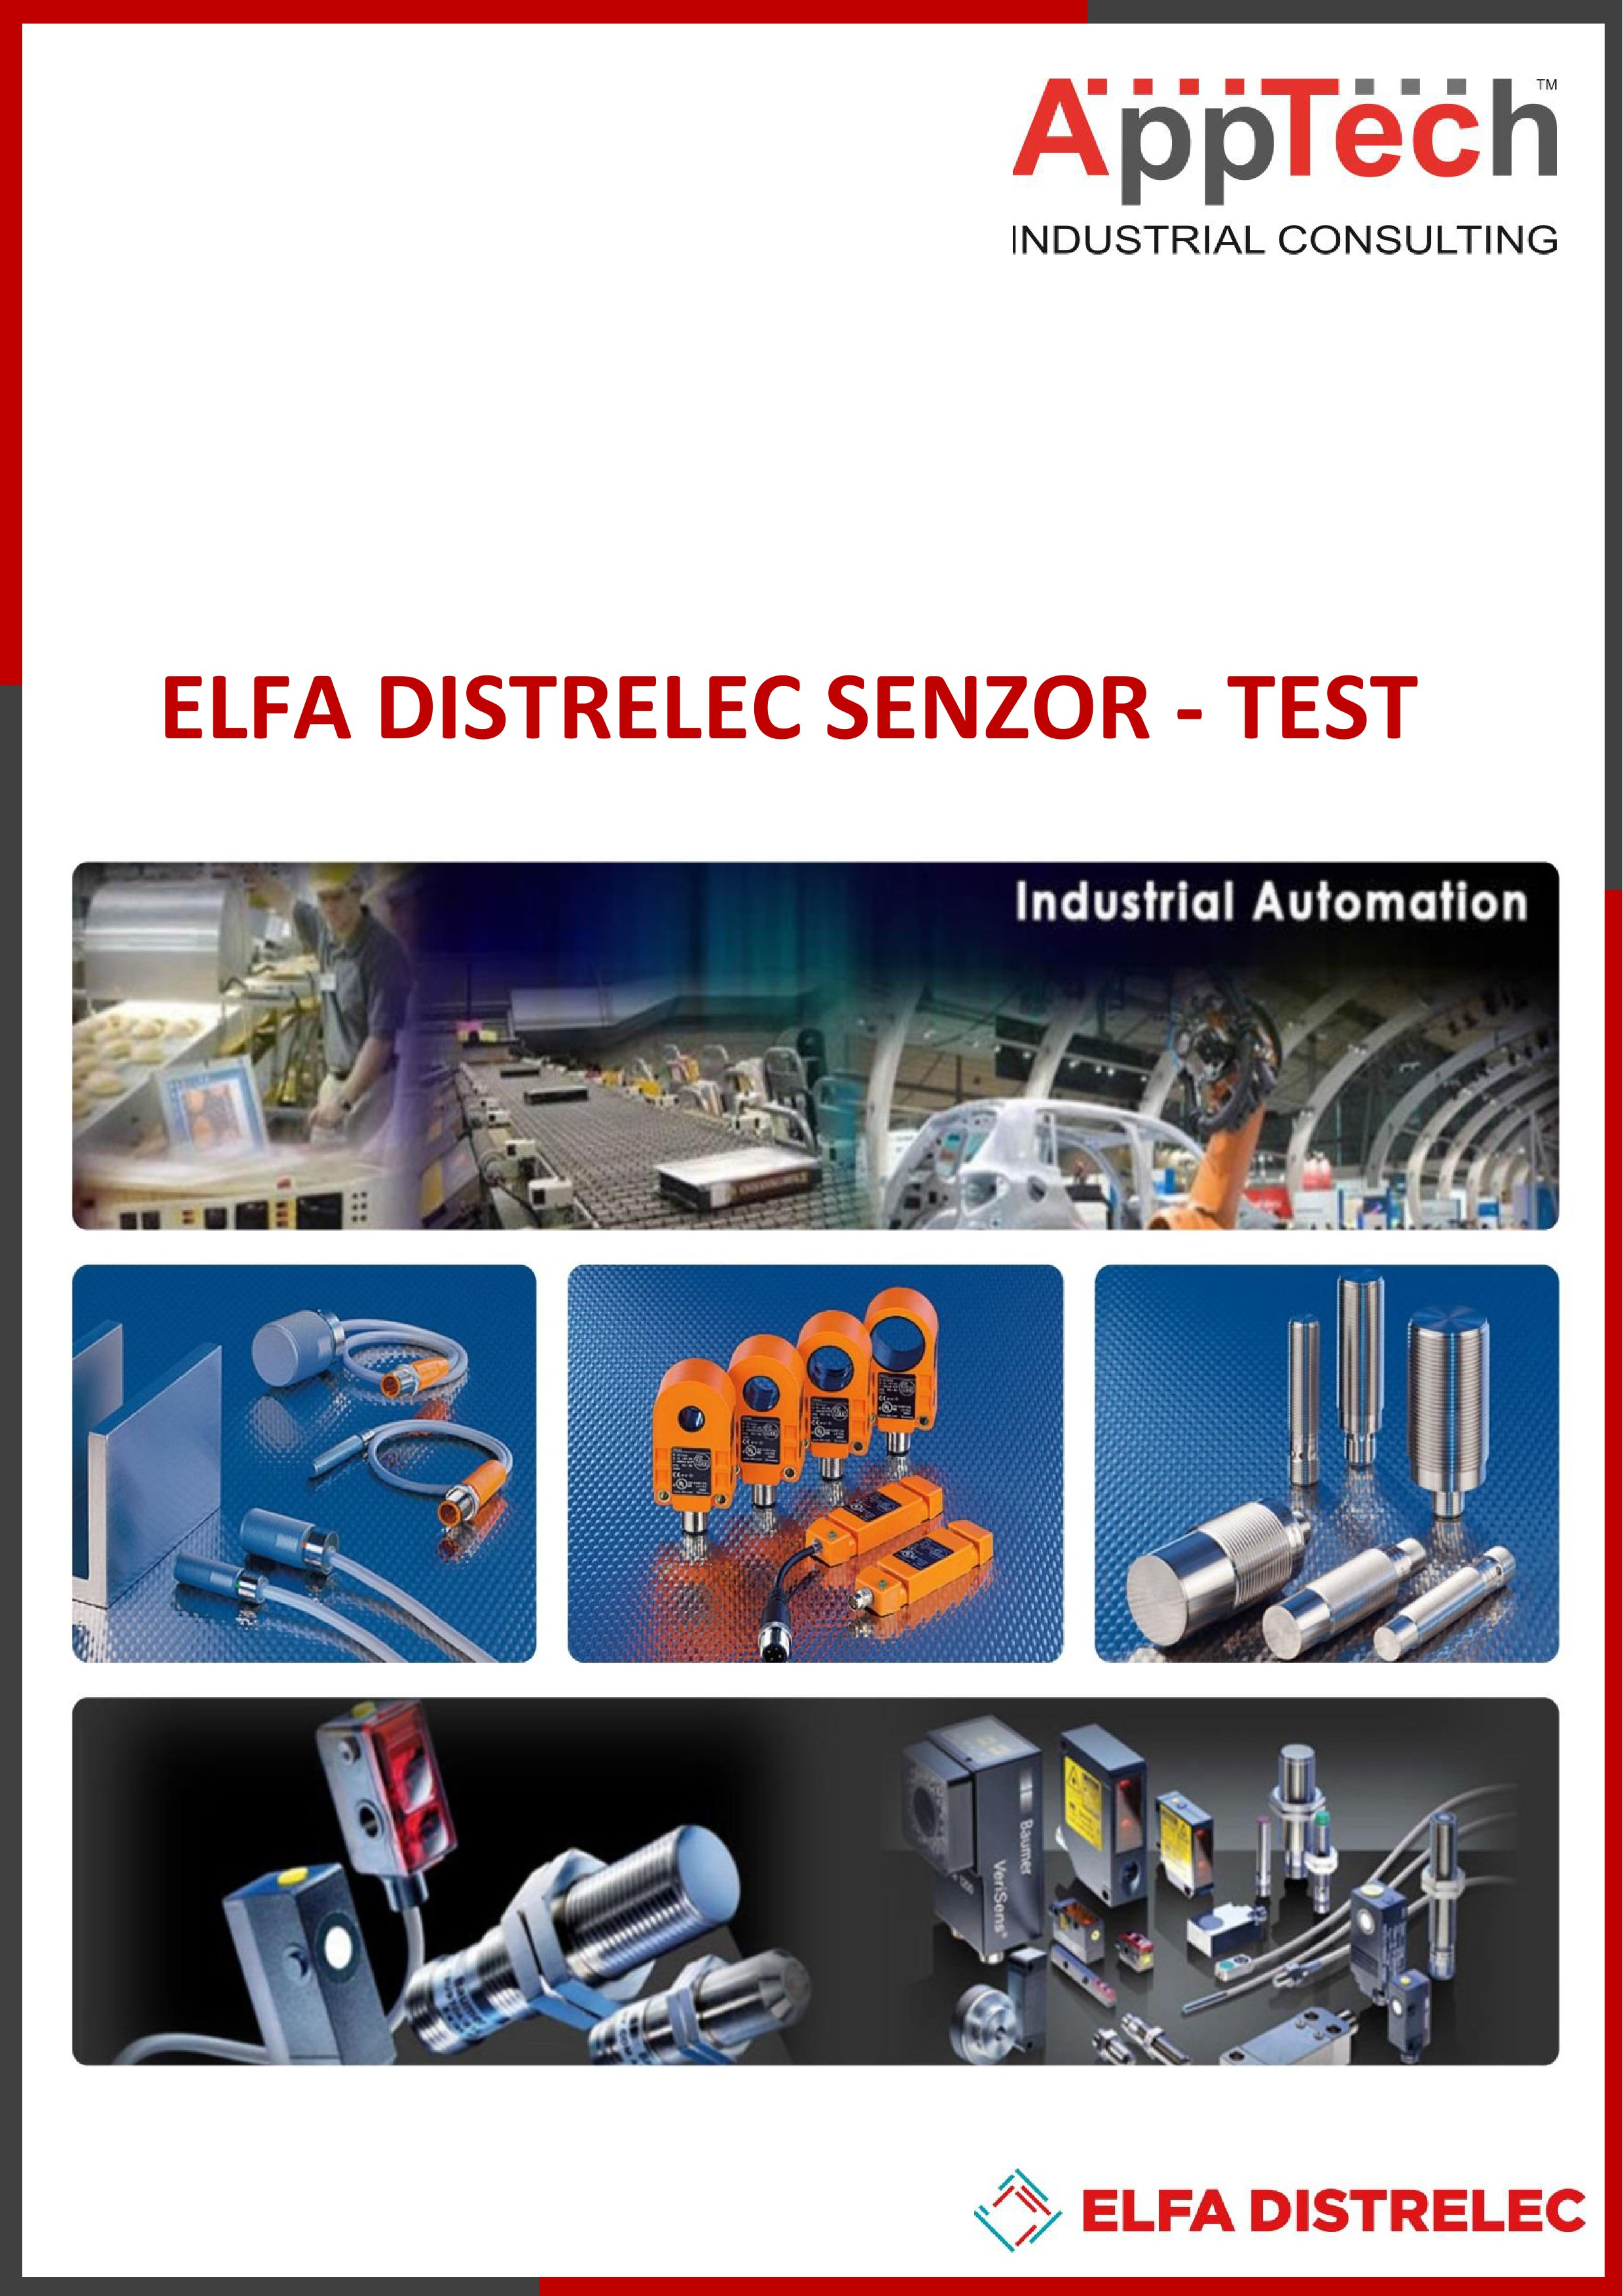 ELFA_DISTRELEC_-_SENZOR_TEST01-00.jpg